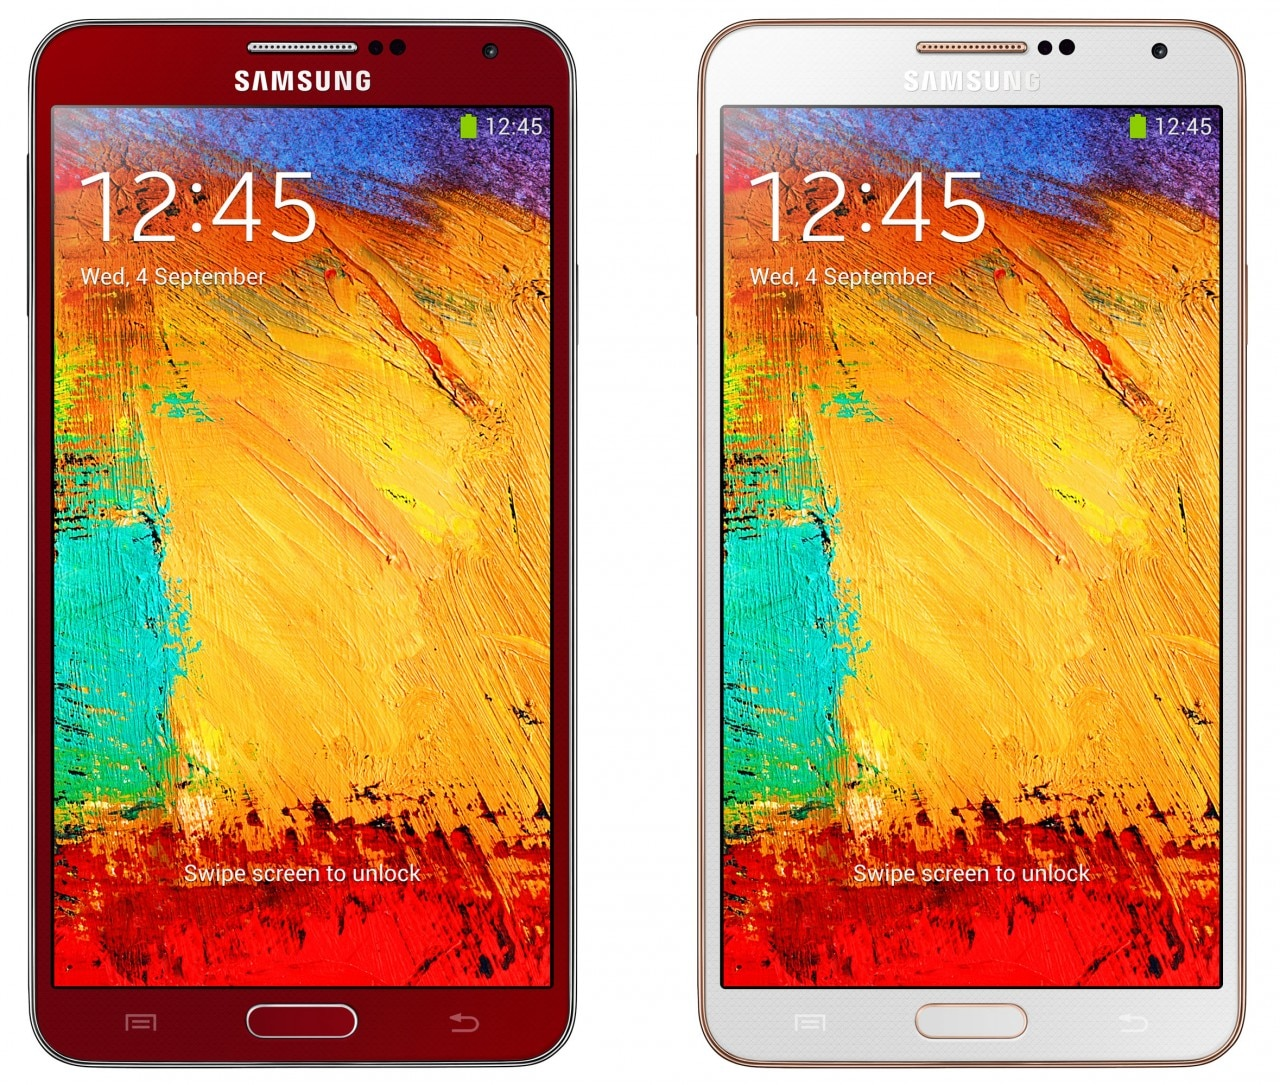 Samsung-Galaxy-Note-3-red - gold